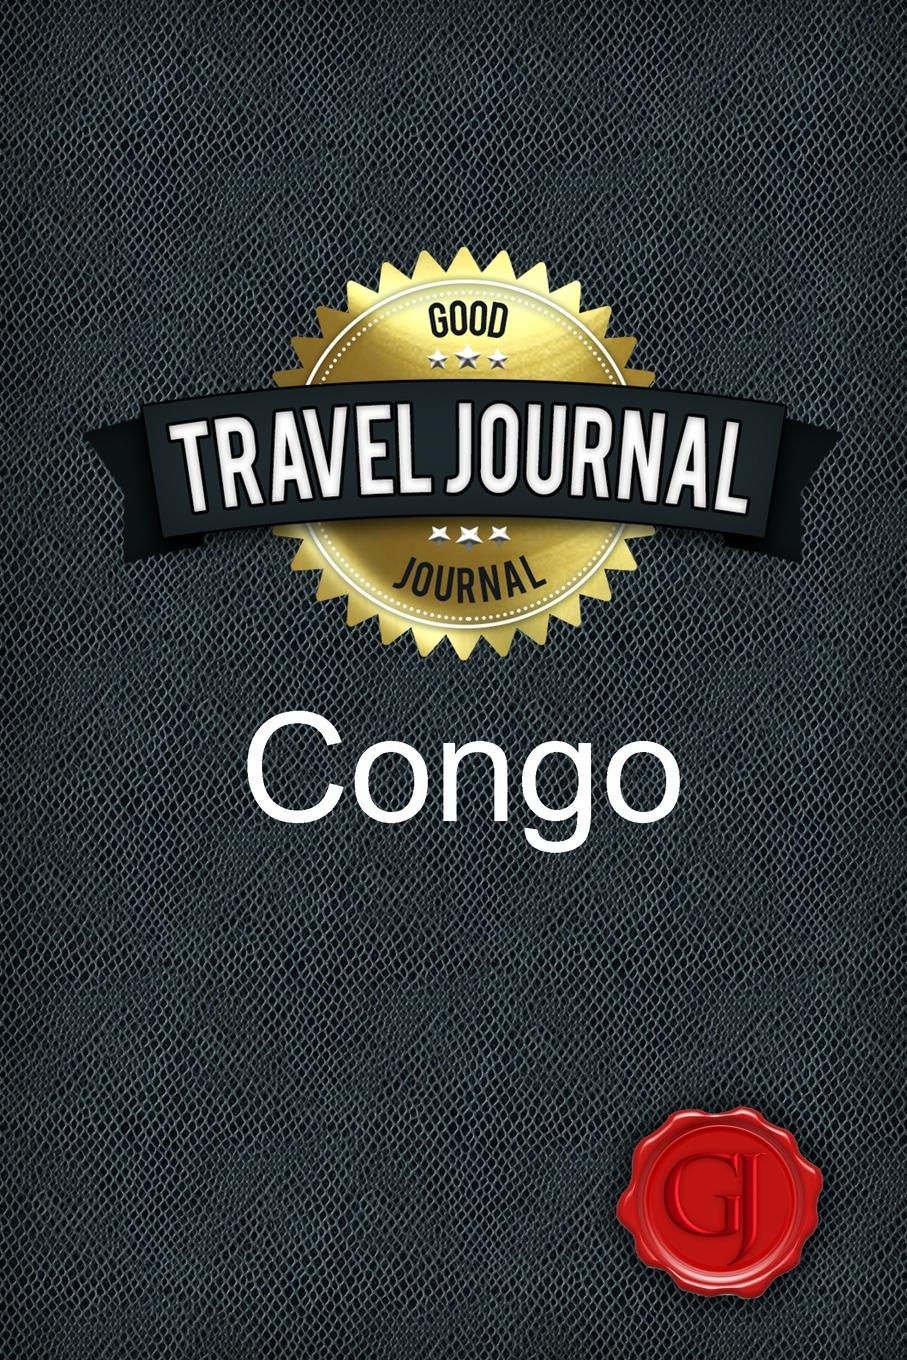 Good Journal Travel Journal Congo розетка schneider electric pc16 006b этюд